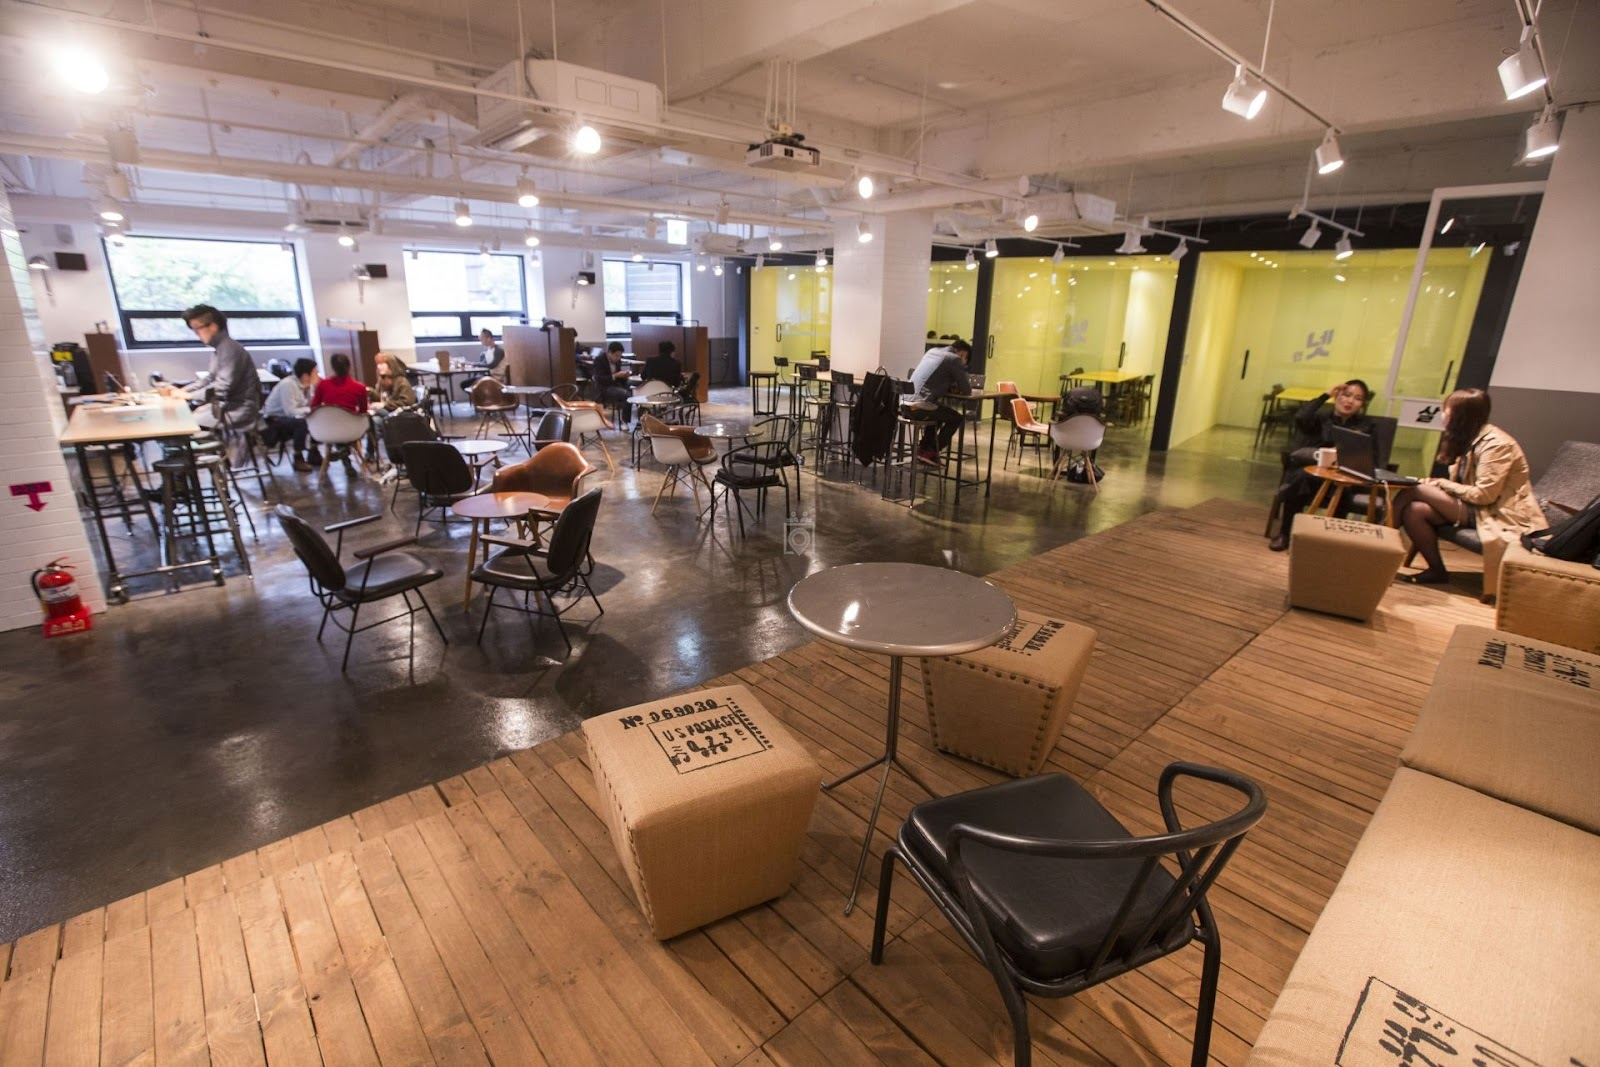 10 Best Coworking Spaces in Seoul-Incheon, South Korea 1